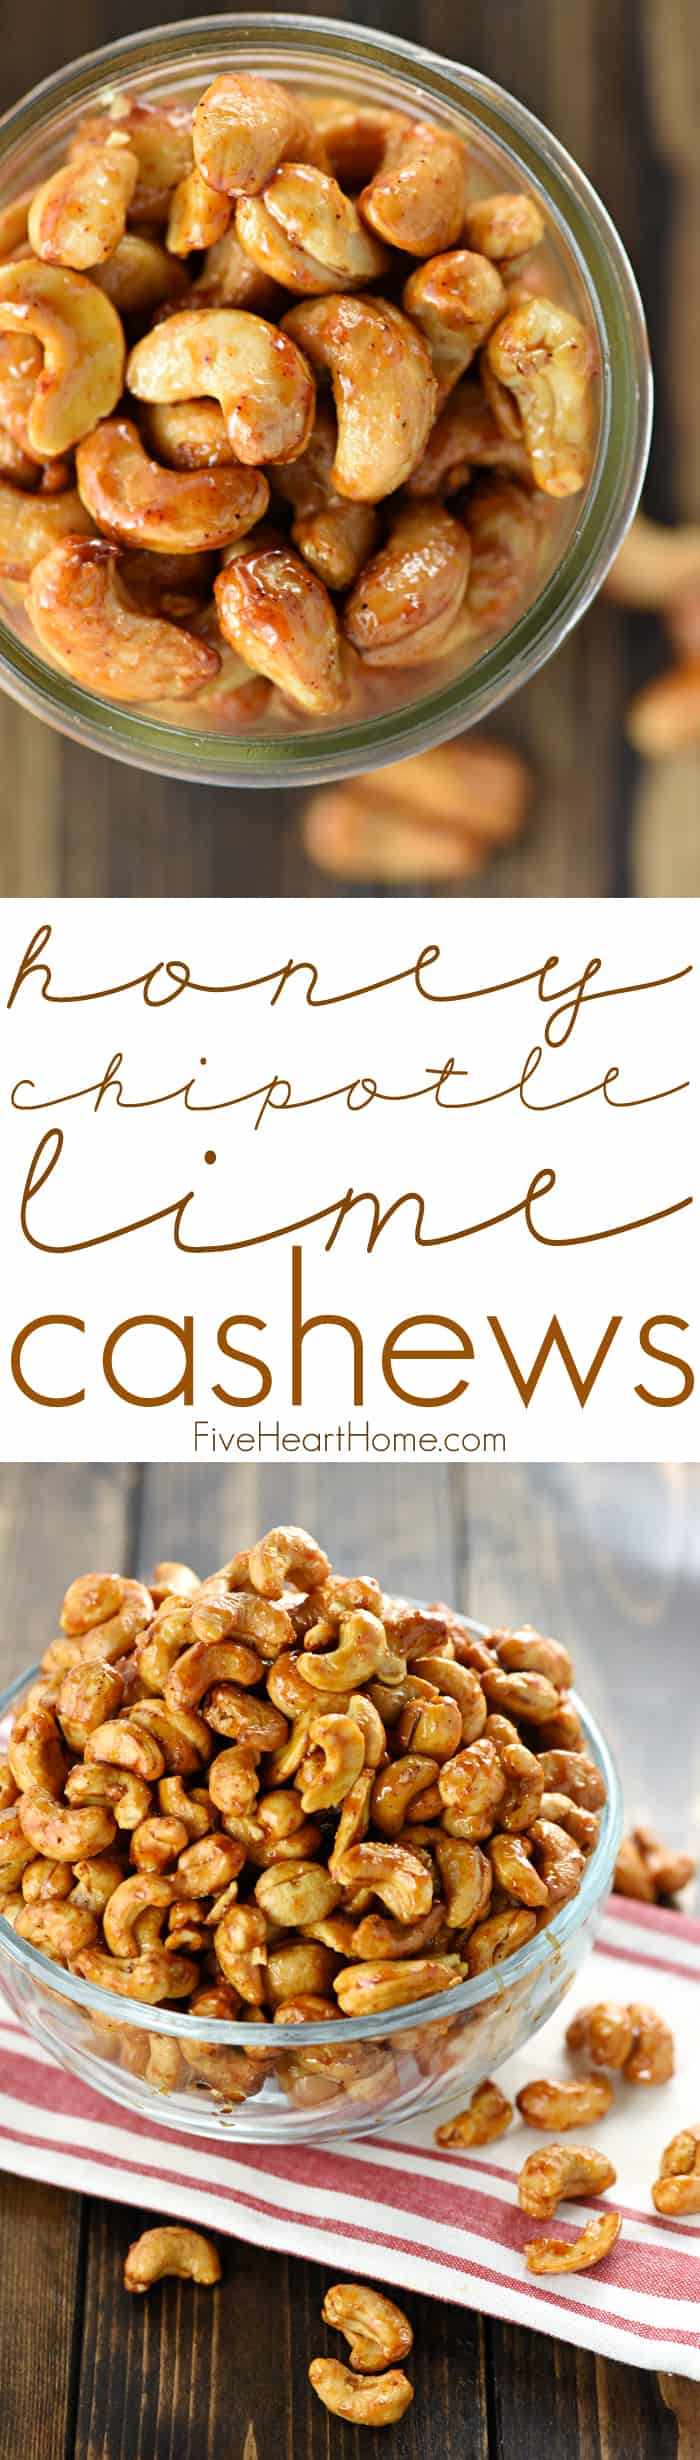 Honey Chipotle Lime Cashews Collage and Text Overlay